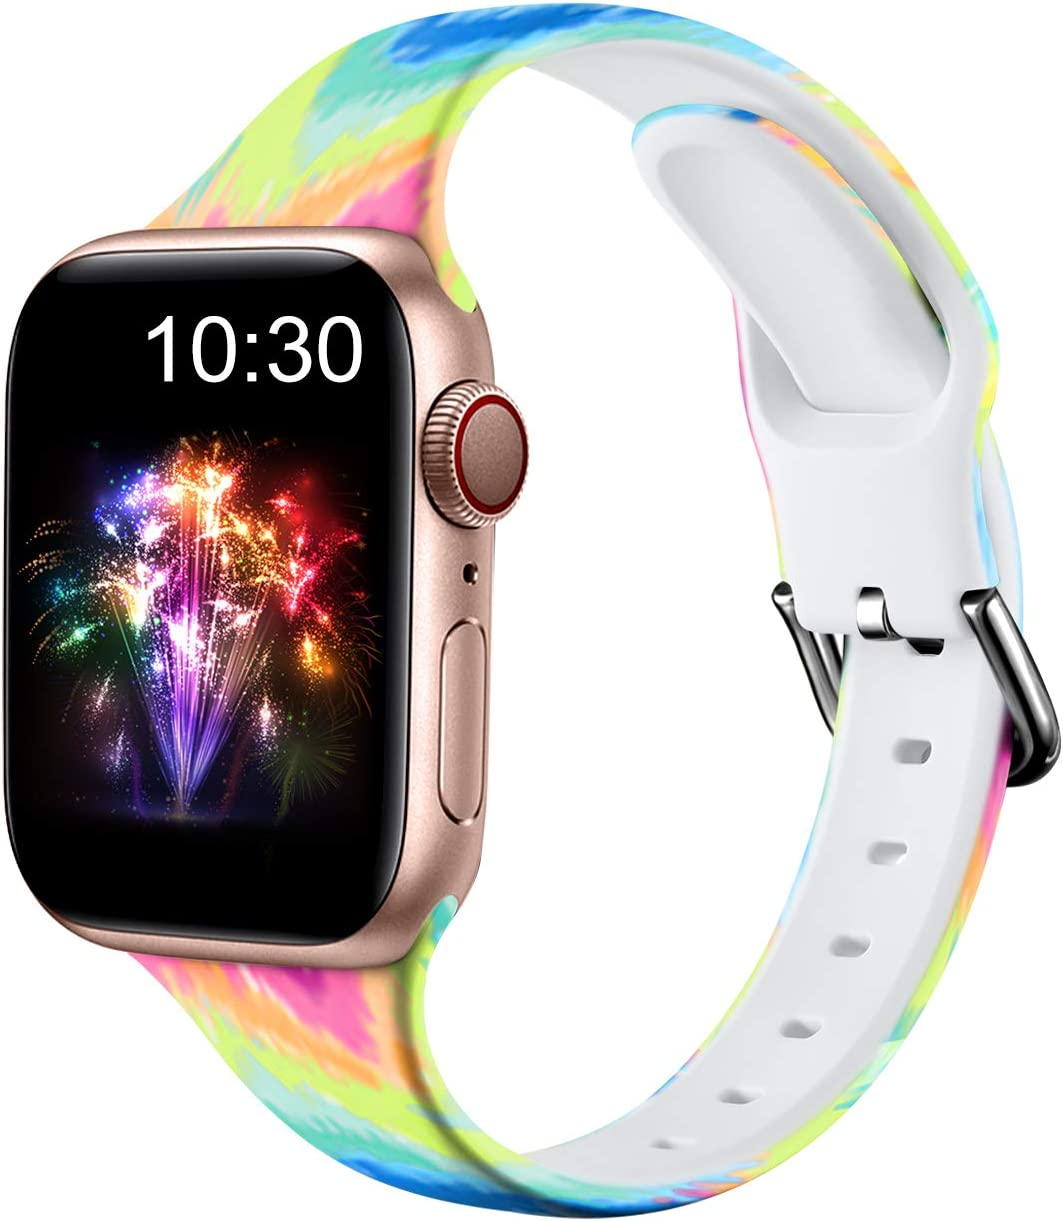 Nofeda Bands Compatible with Apple Watch Band 42mm 44mm iWatch Series 6 5 4 3 2 1 & SE, Slim Silicone Printed Fadeless Replacement Strap Band for Women Men, Rainbow